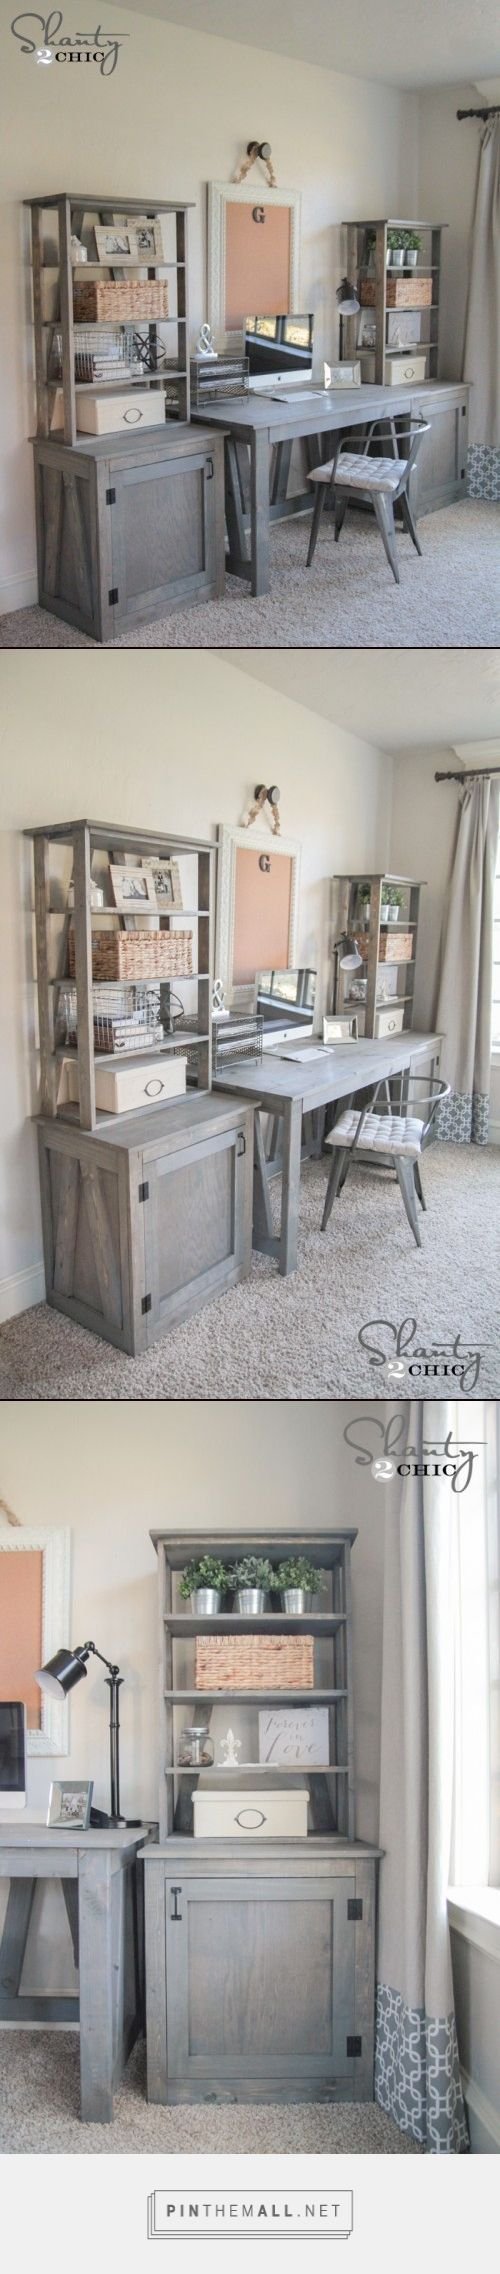 DIY Bookcase - Shanty 2 Chic... - a grouped images picture DIY Desk System! Completely customizable! Free woodworking plans and tutorial at www.shanty-2-chic